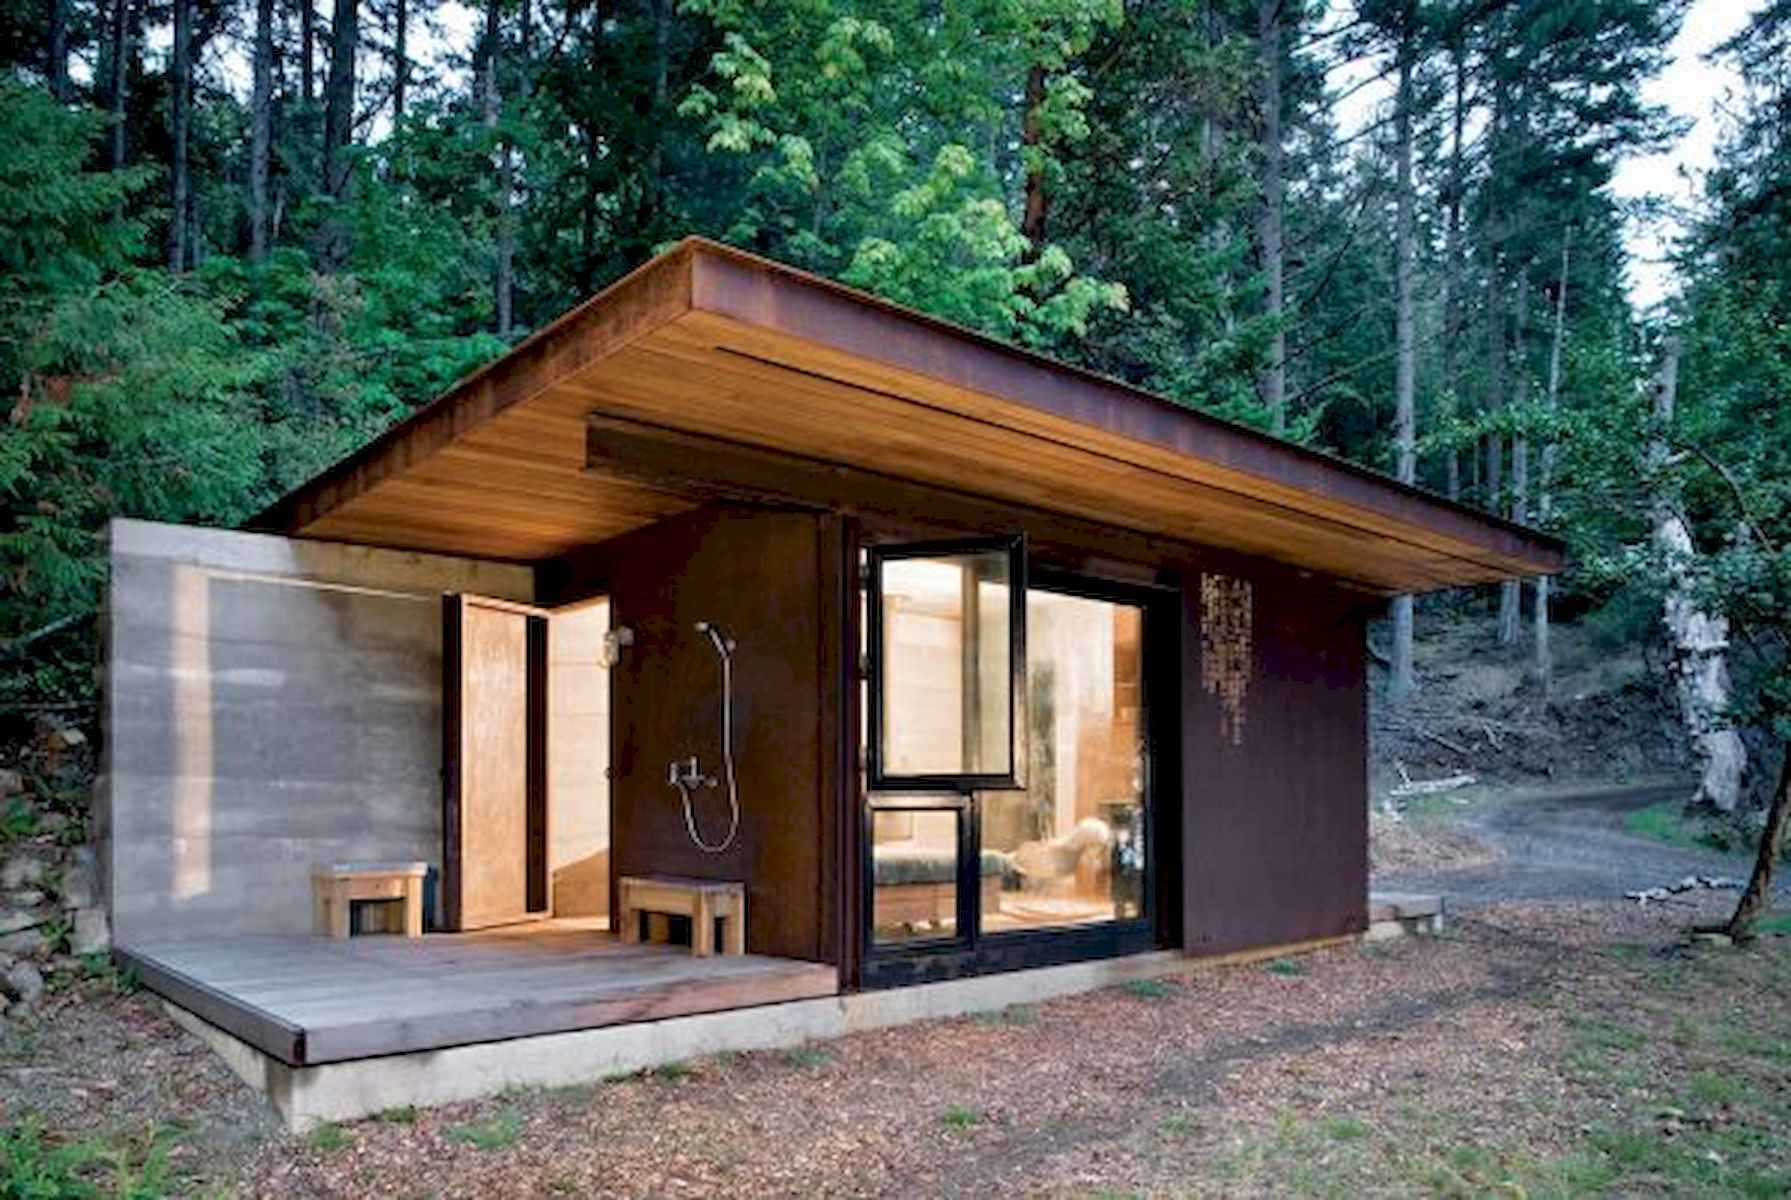 60 Rustic Log Cabin Homes Plans Design Ideas And Remodel (53)